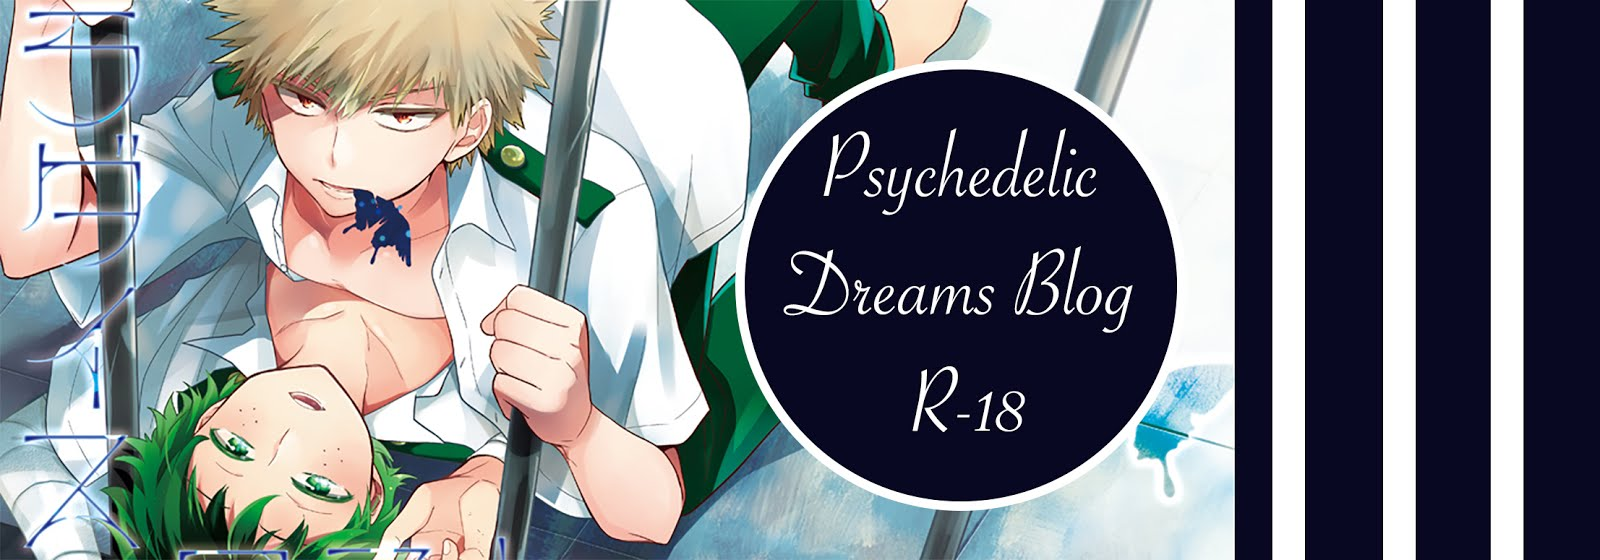 Psychedelic Dreams Blog R18